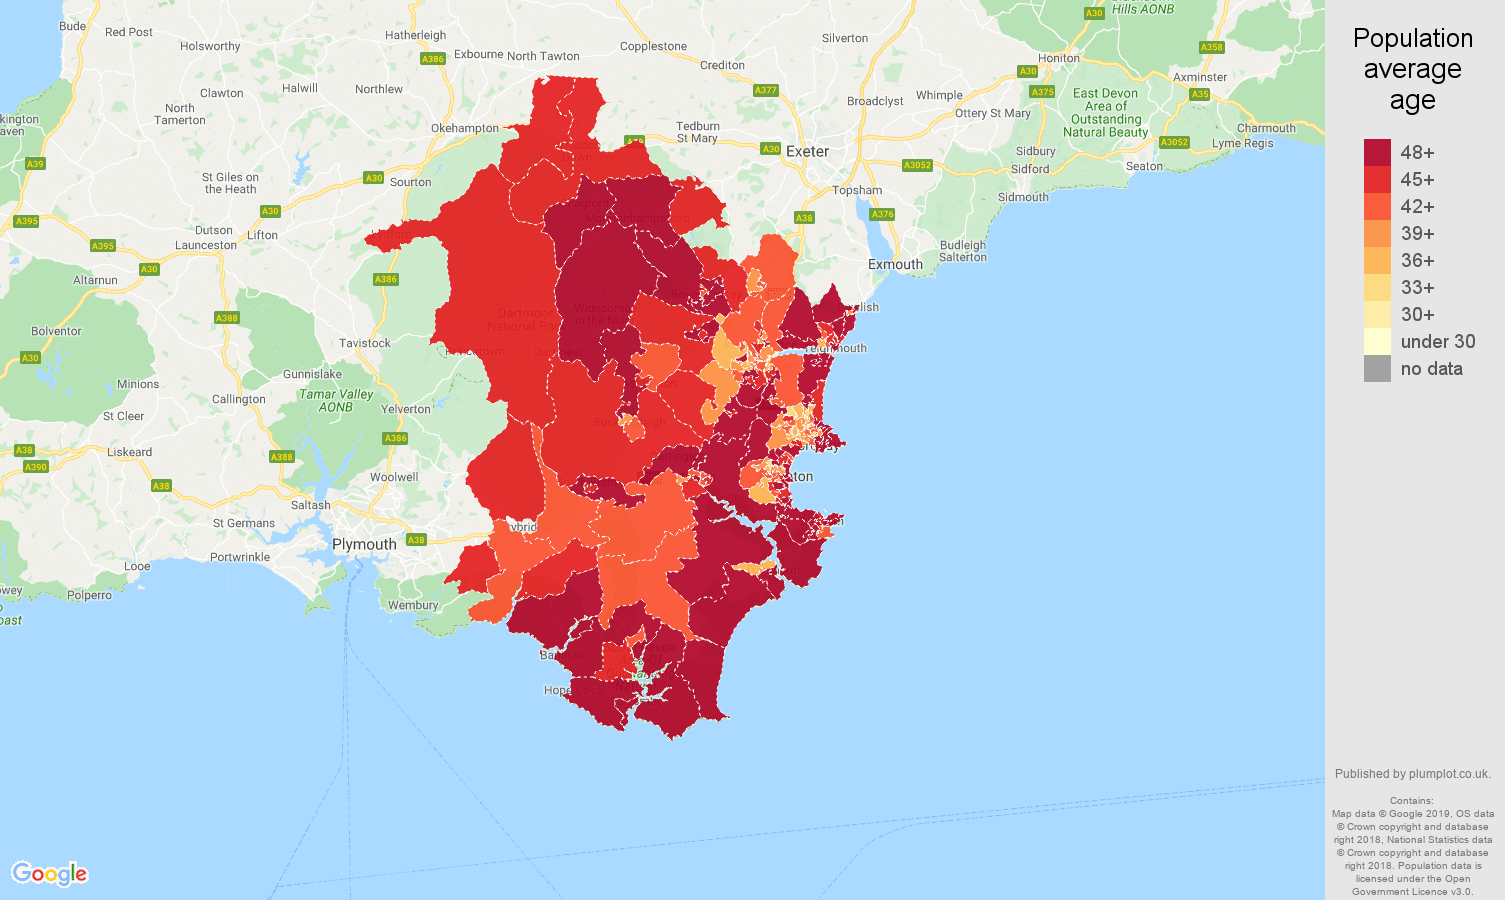 Torquay population average age map